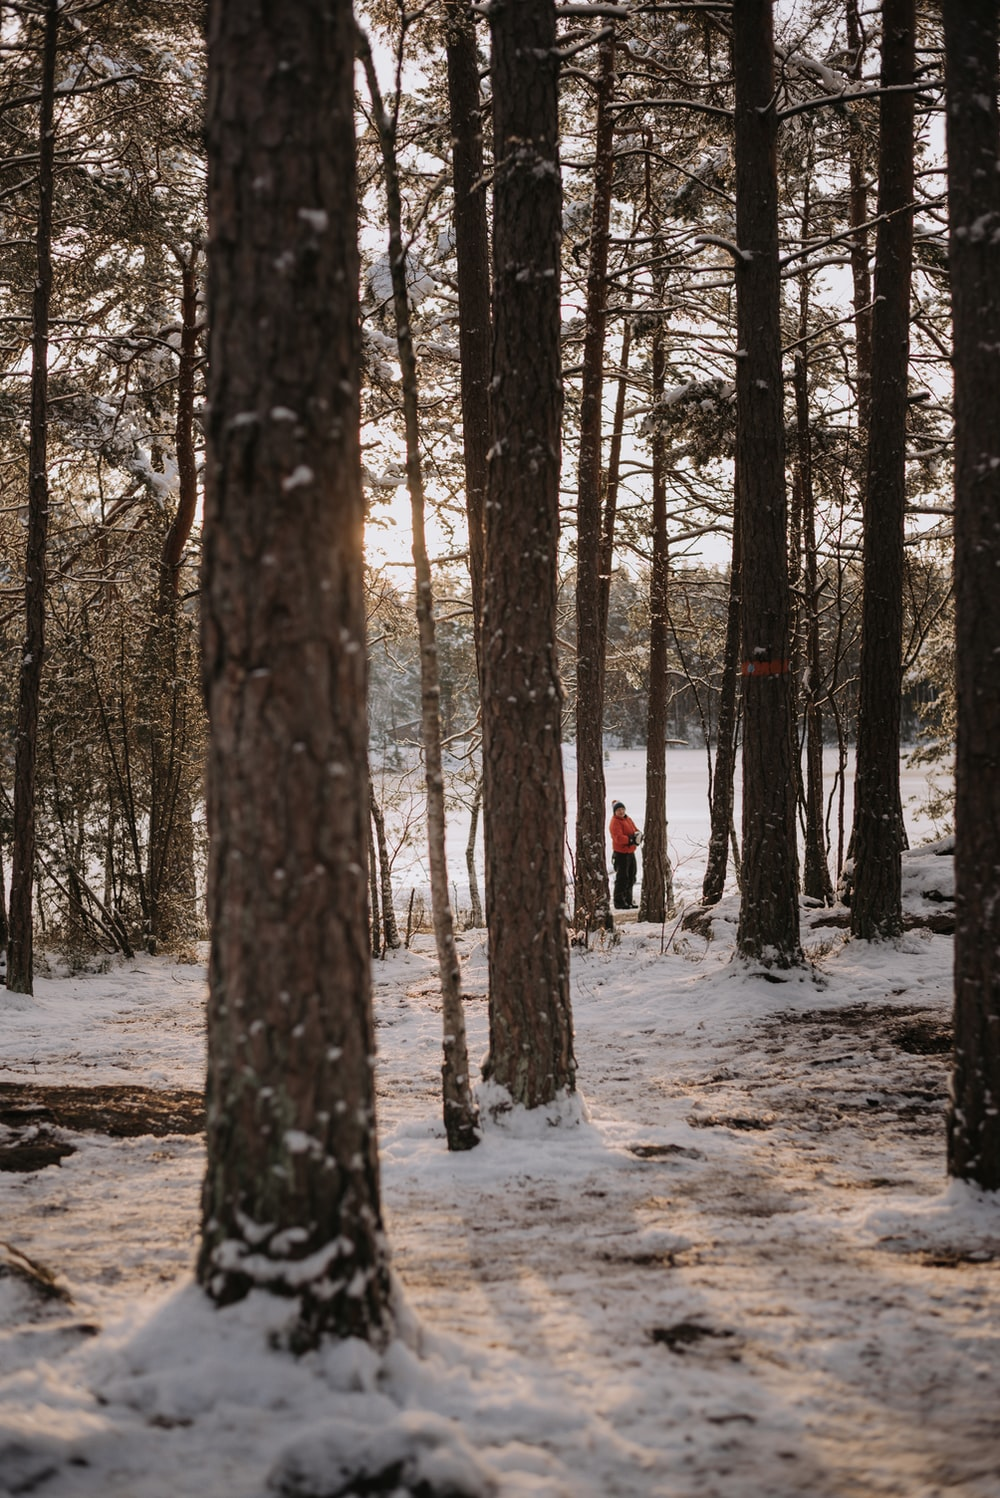 person in red jacket walking on snow covered ground in the woods during daytime